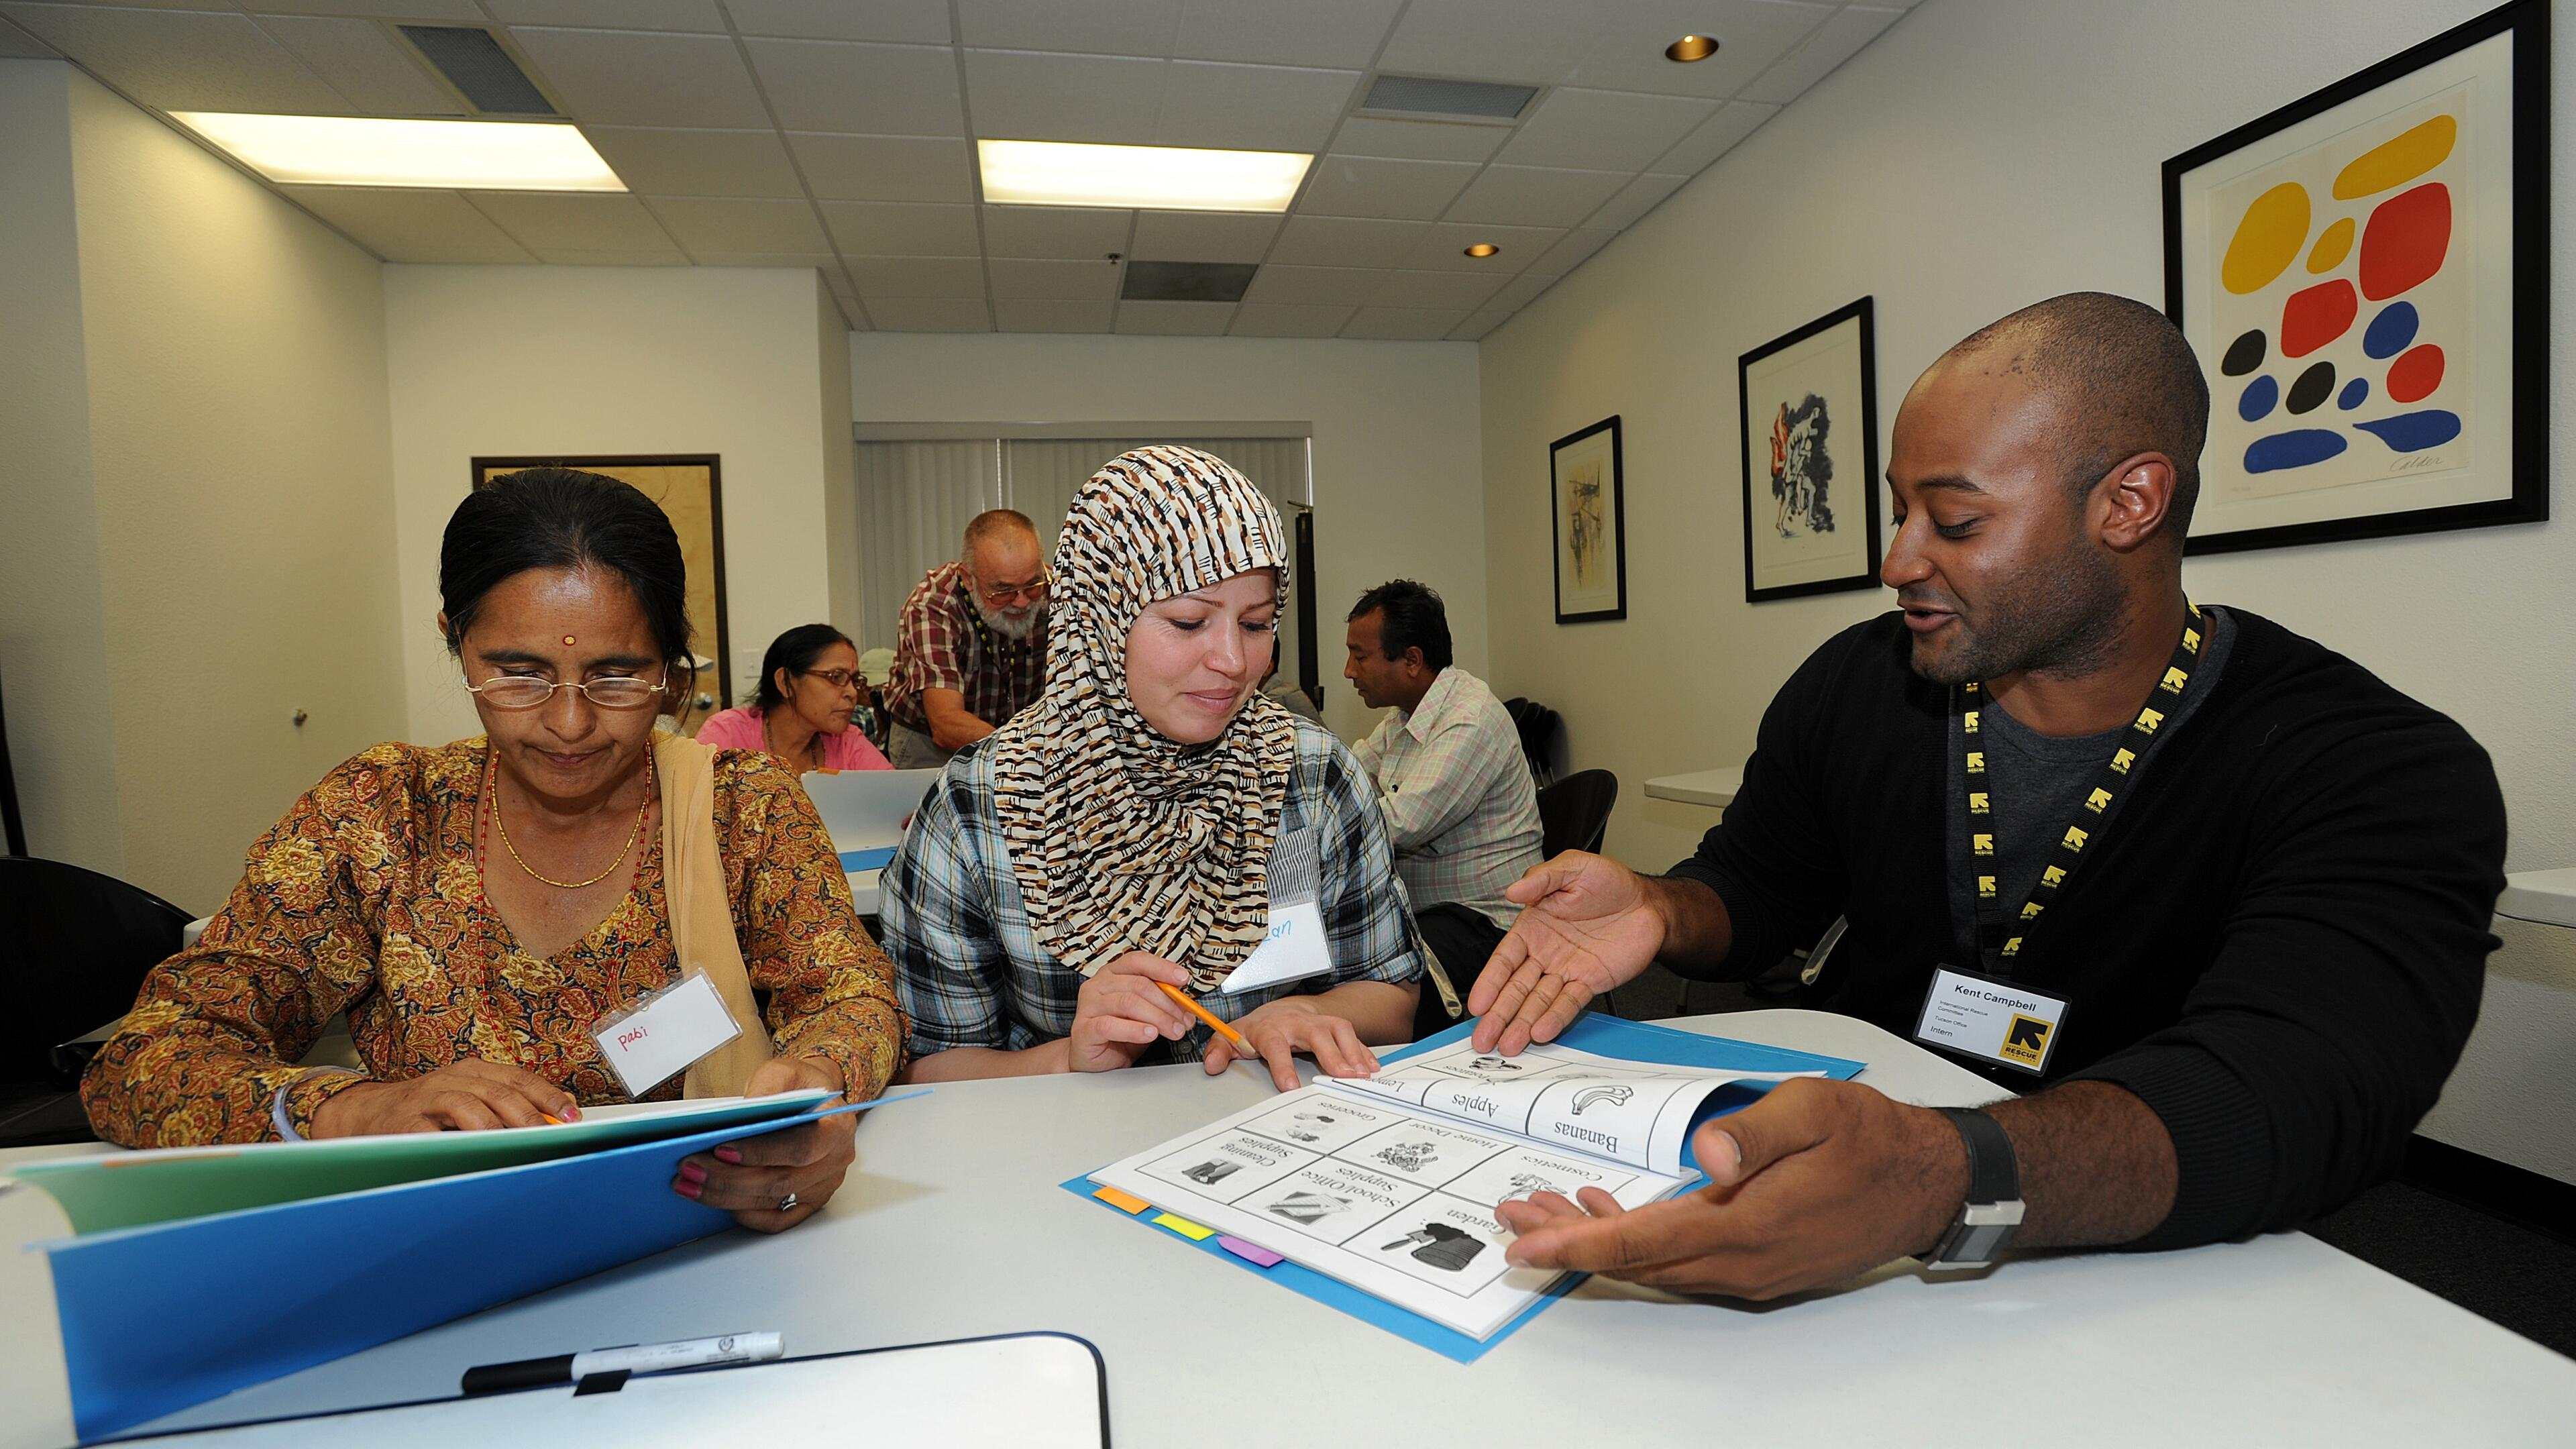 lives in baltimore md international committee irc refugees learning english as part of employment readiness training in the united states